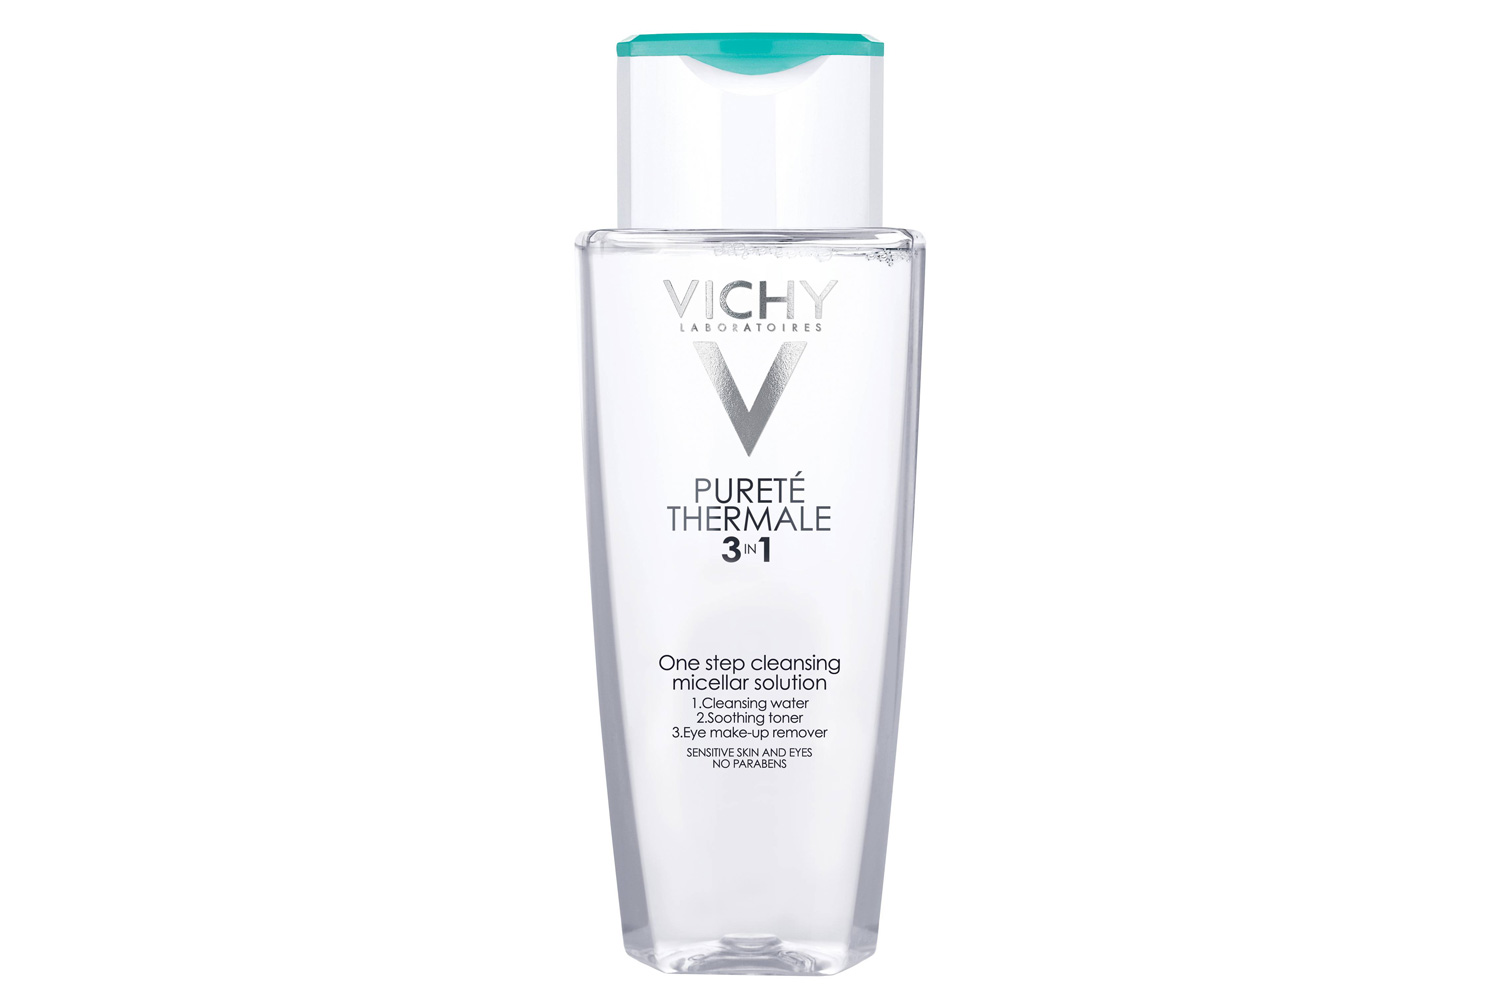 Vichy Purete Thermale Calming Cleansing Solution